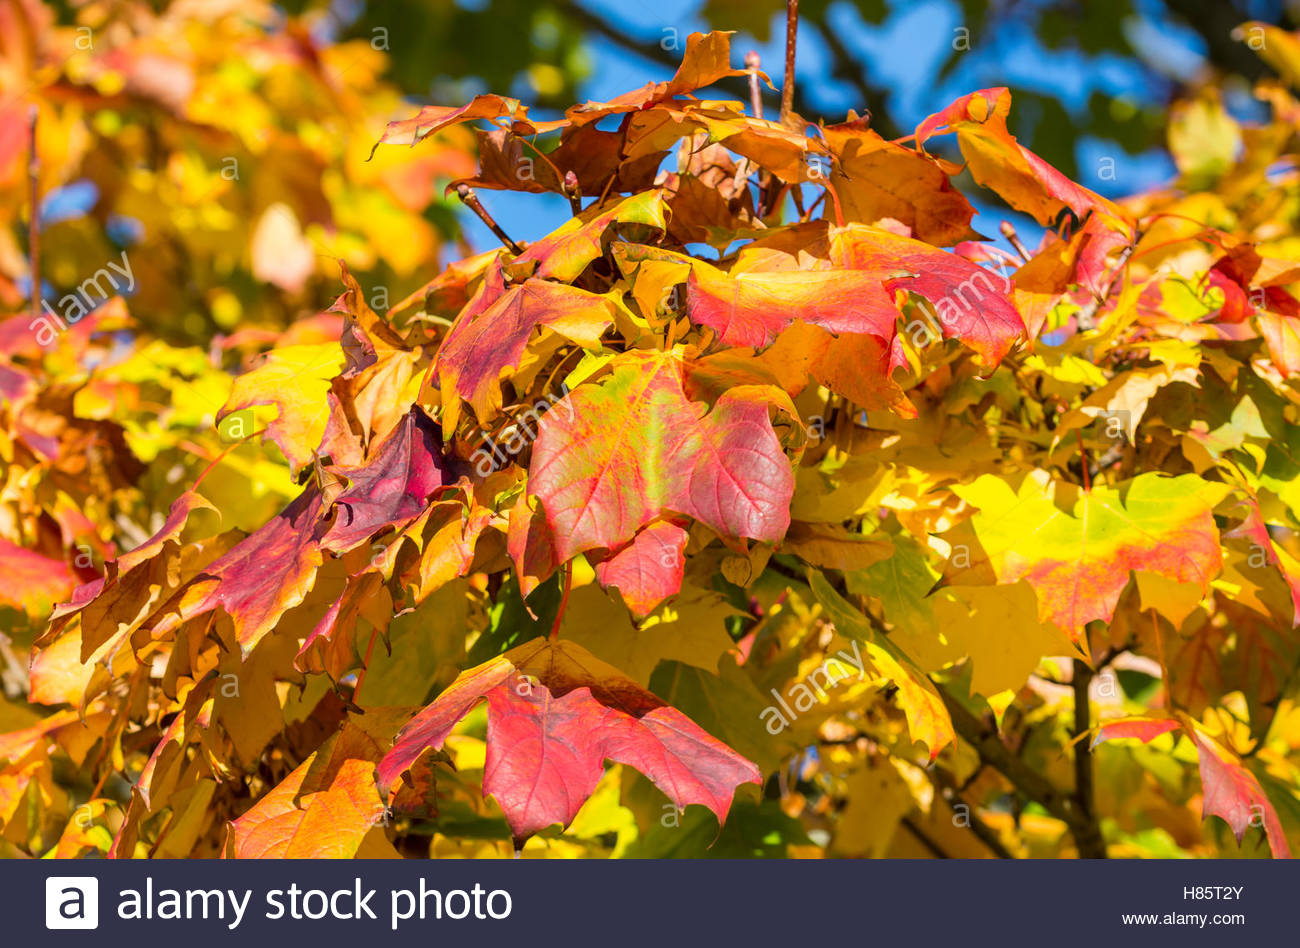 colourful-autumn-leaves-on-a-tree-in-the